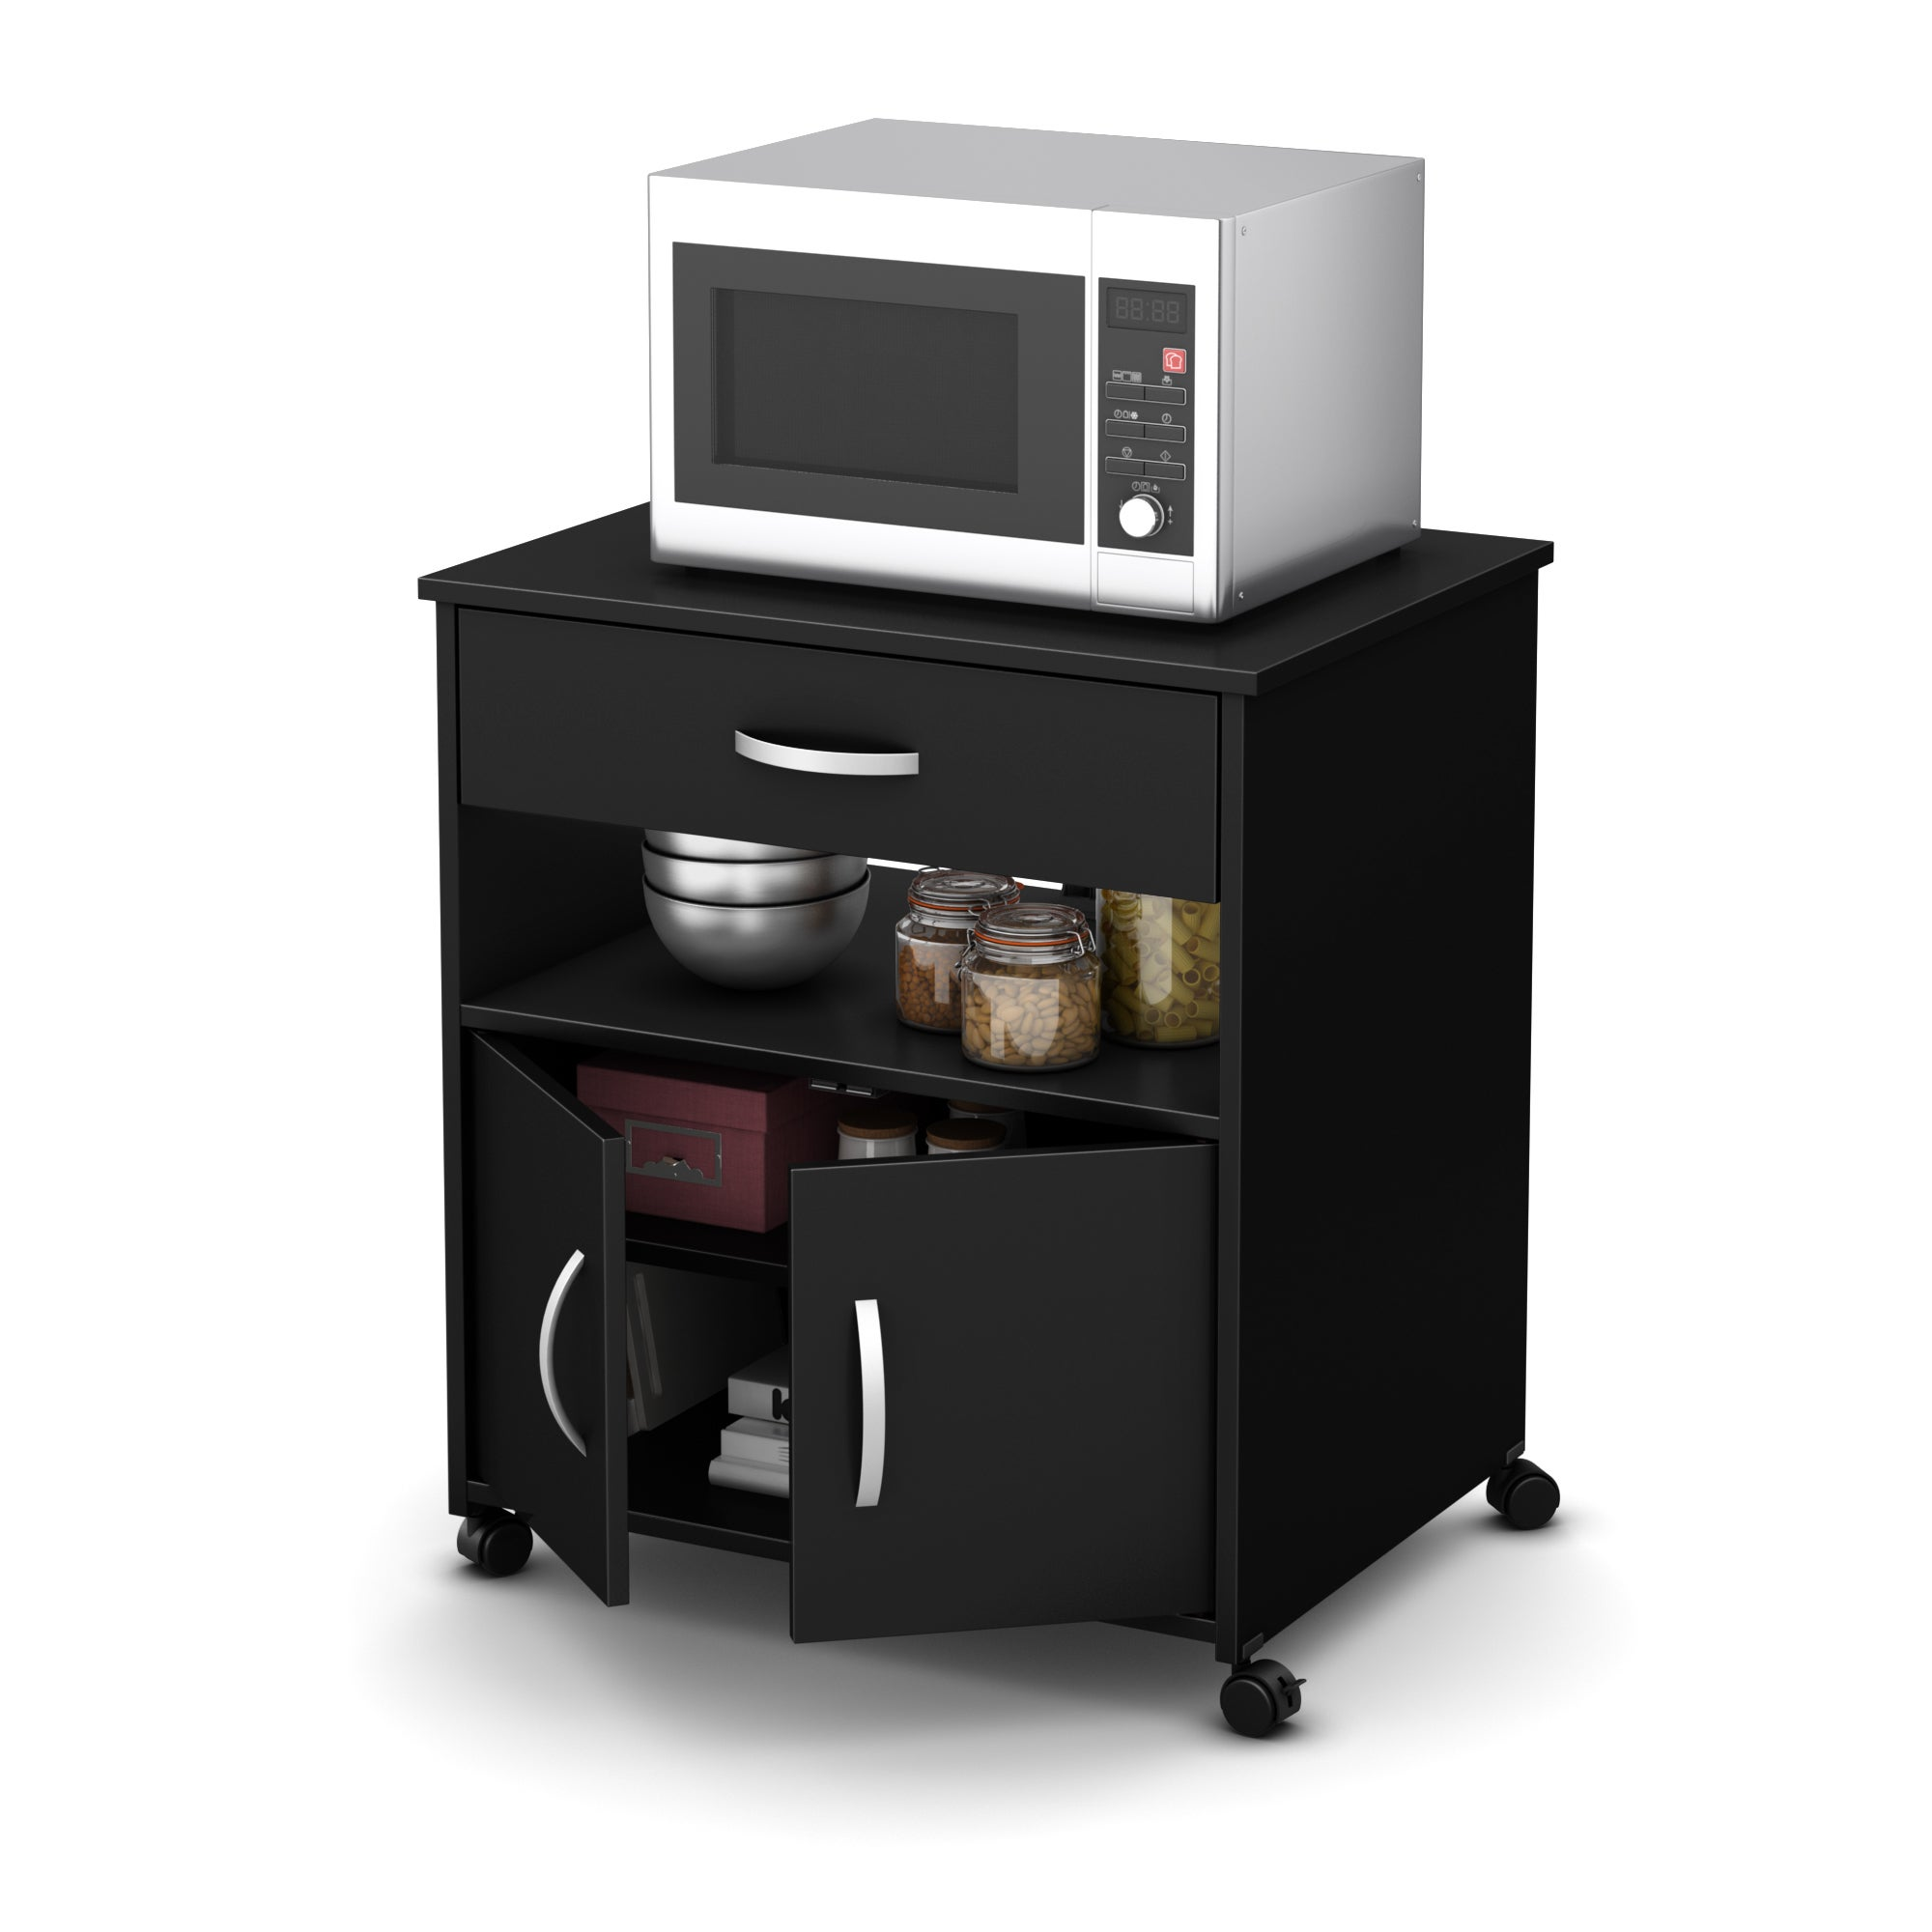 South S Fiesta Microwave Cart On Wheels Free Shipping Today 10455556